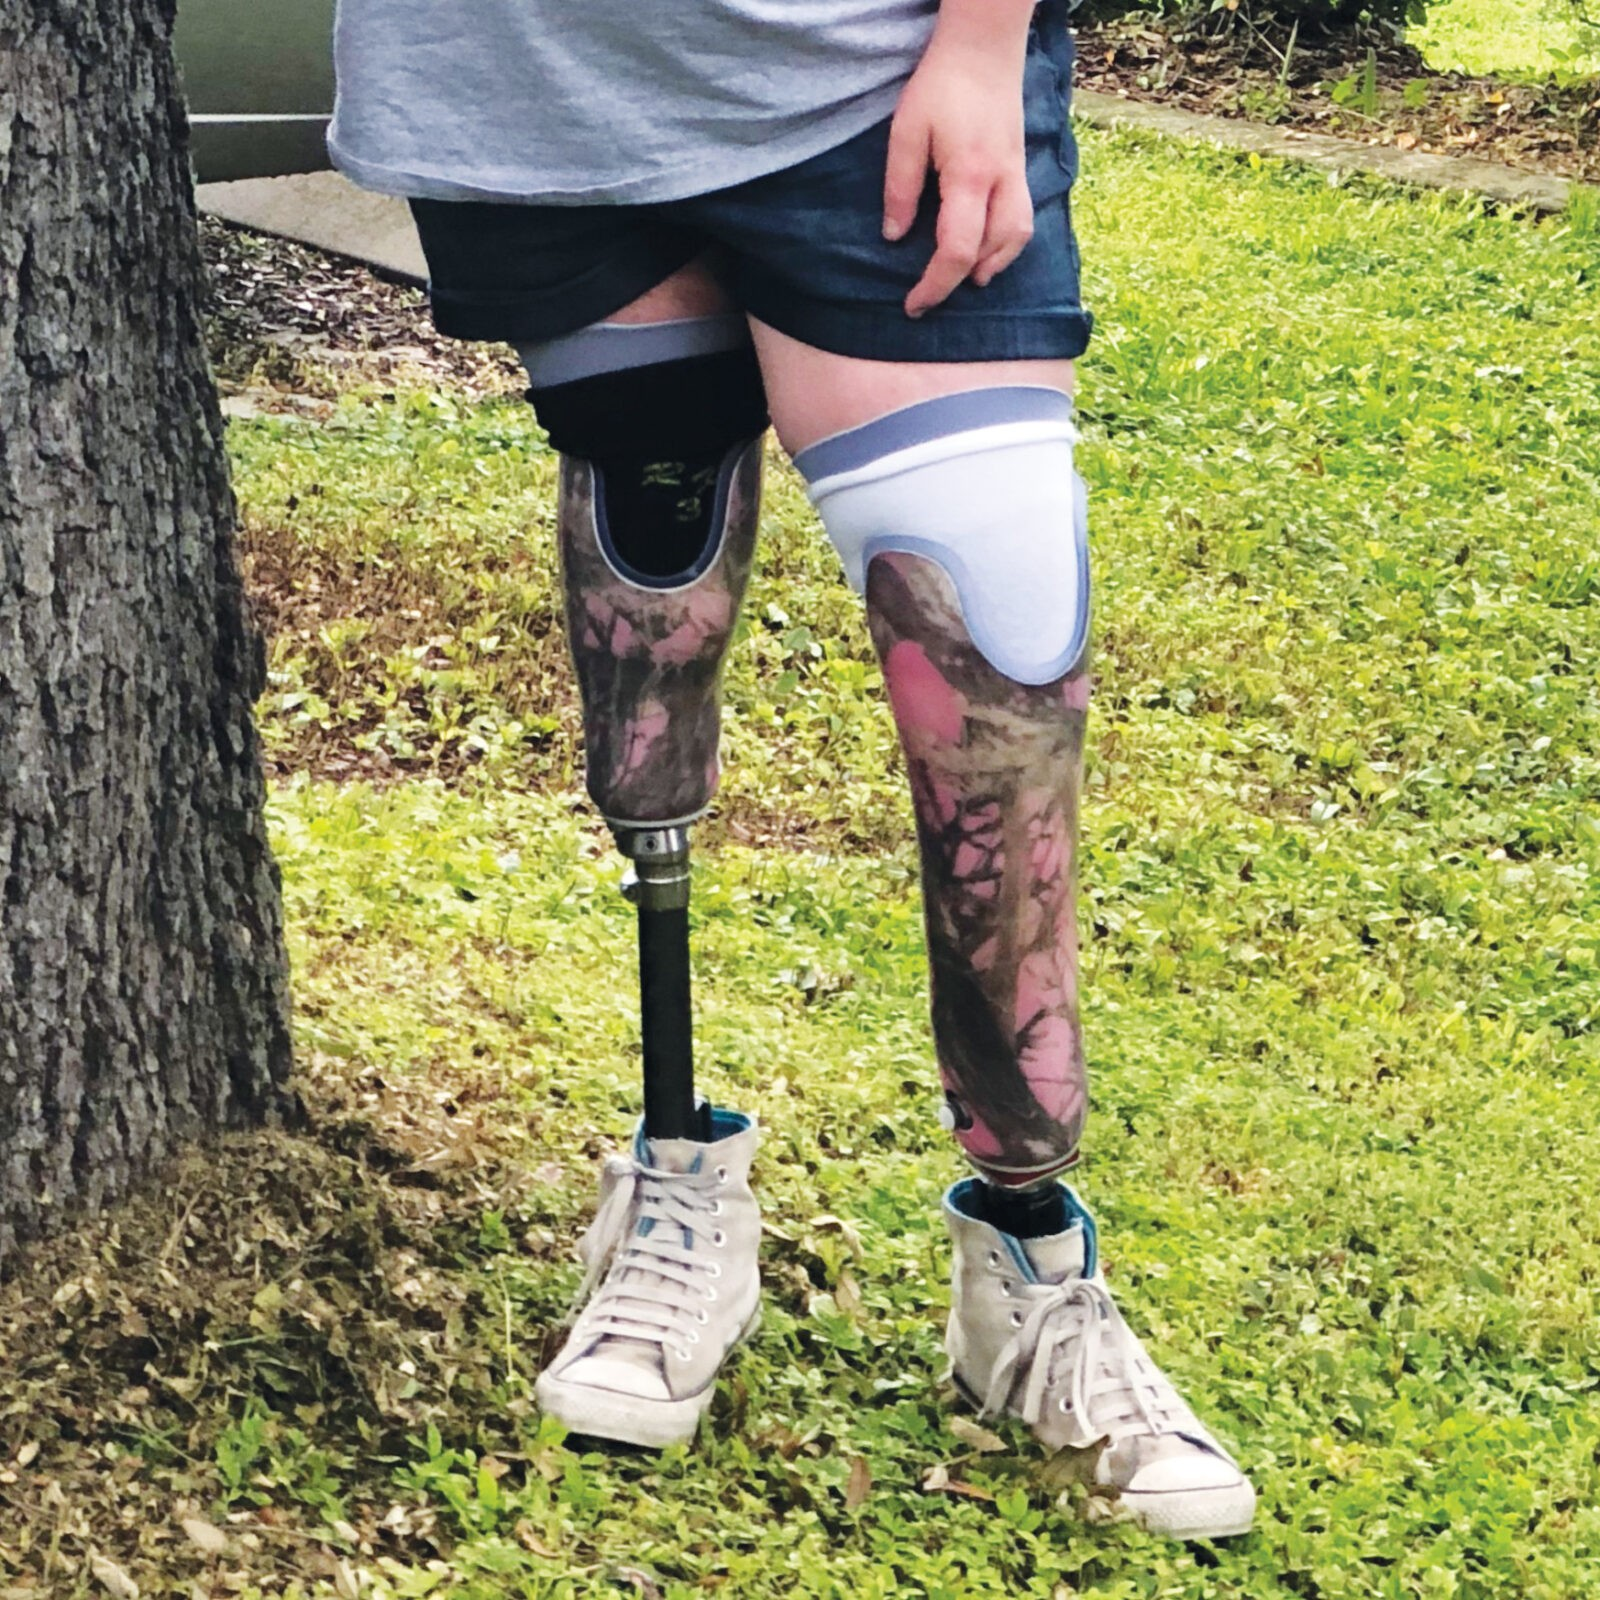 teenager with prosthetic legs